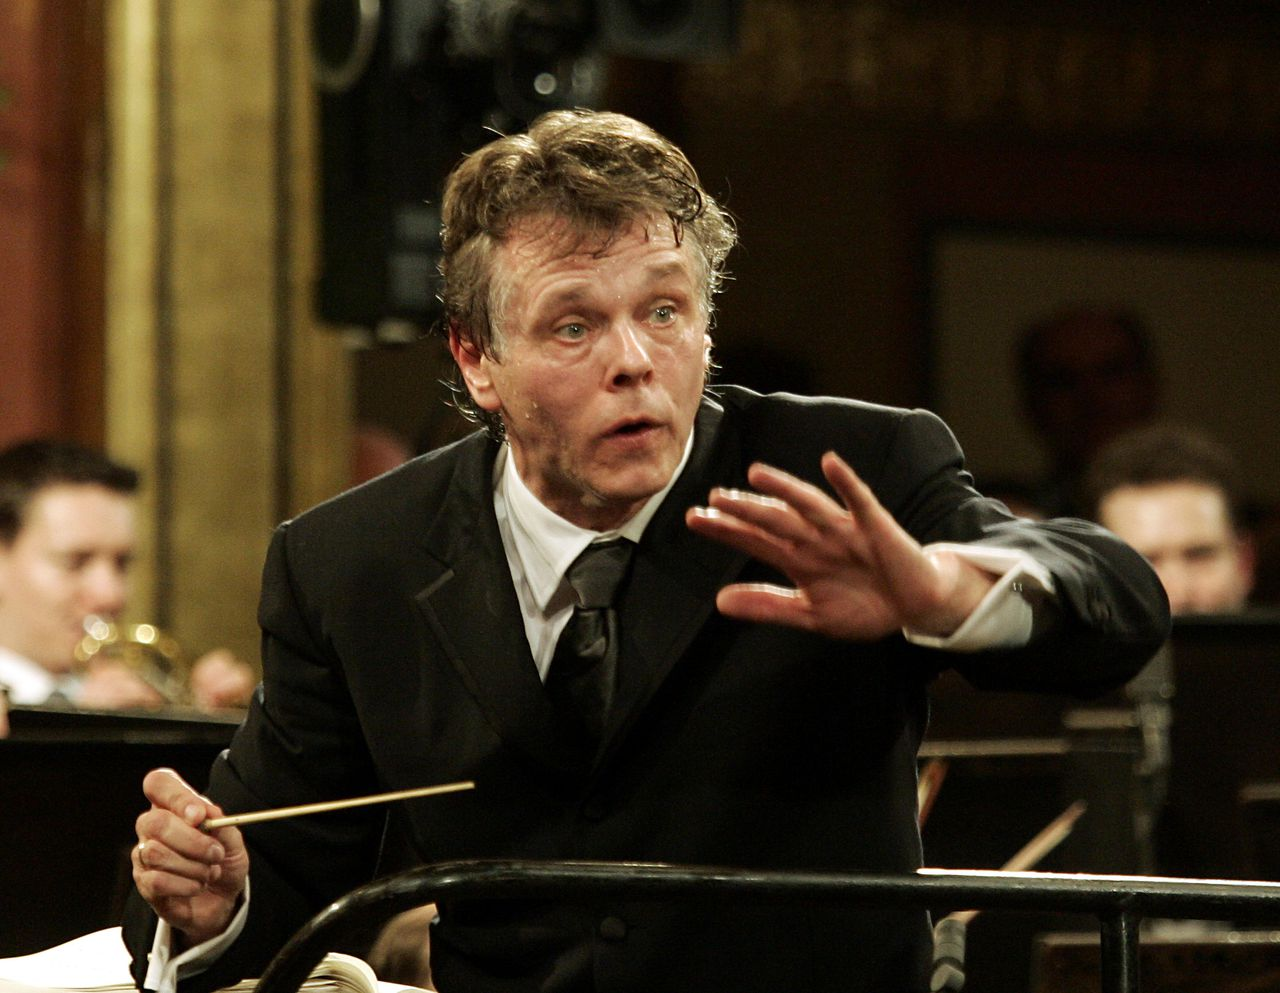 Latvian Maestro Mariss Jansons conducts the Vienna Philharmonic Orchestra during the traditional New Year's concert, on Sunday, Jan. 1, 2006, at Vienna's Musikverein. (AP Photo/Hans Punz)